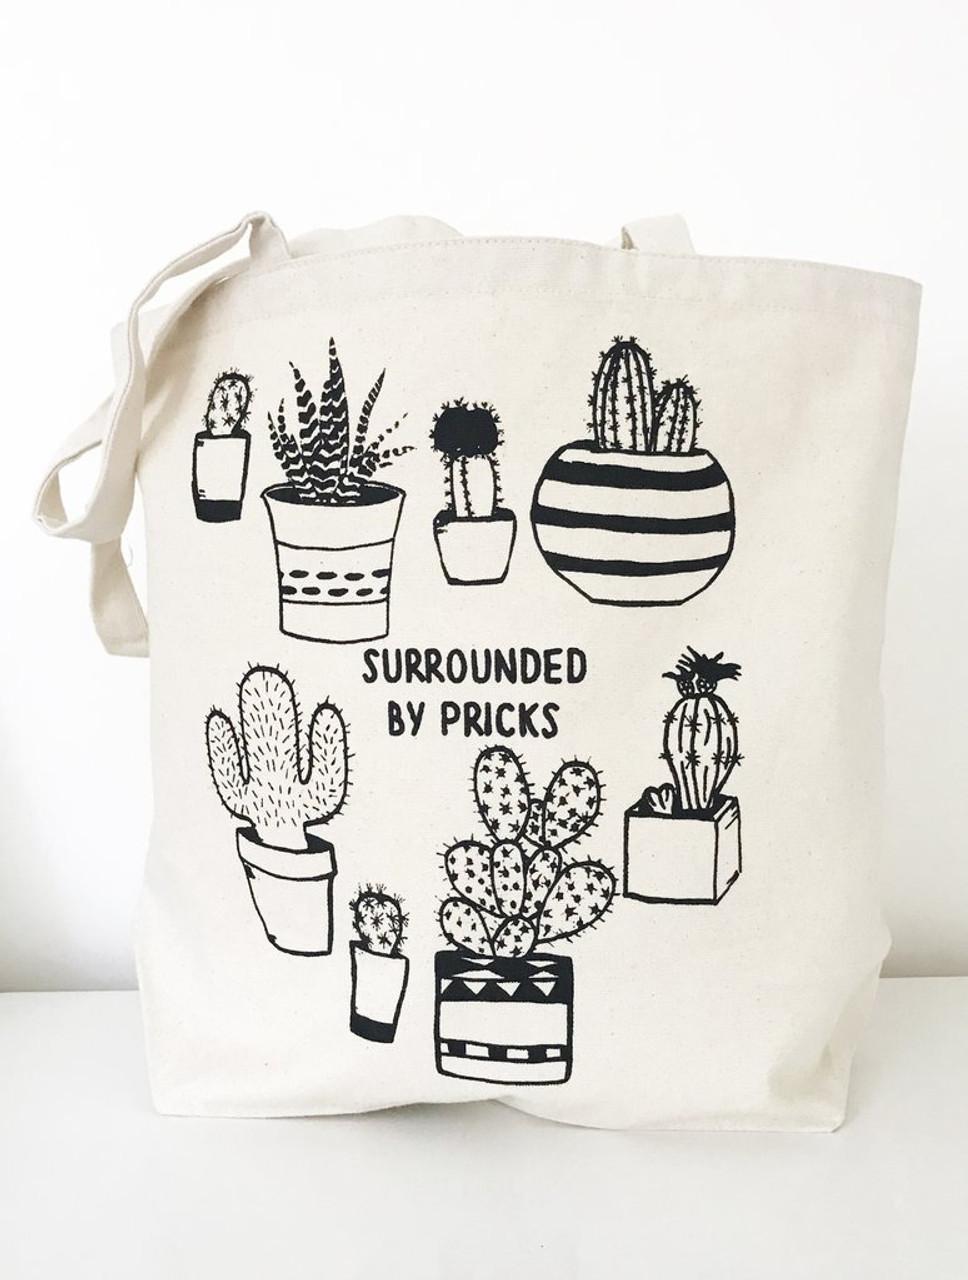 Surrounded by Pricks Farmers Market Tote by The Coin Laundry